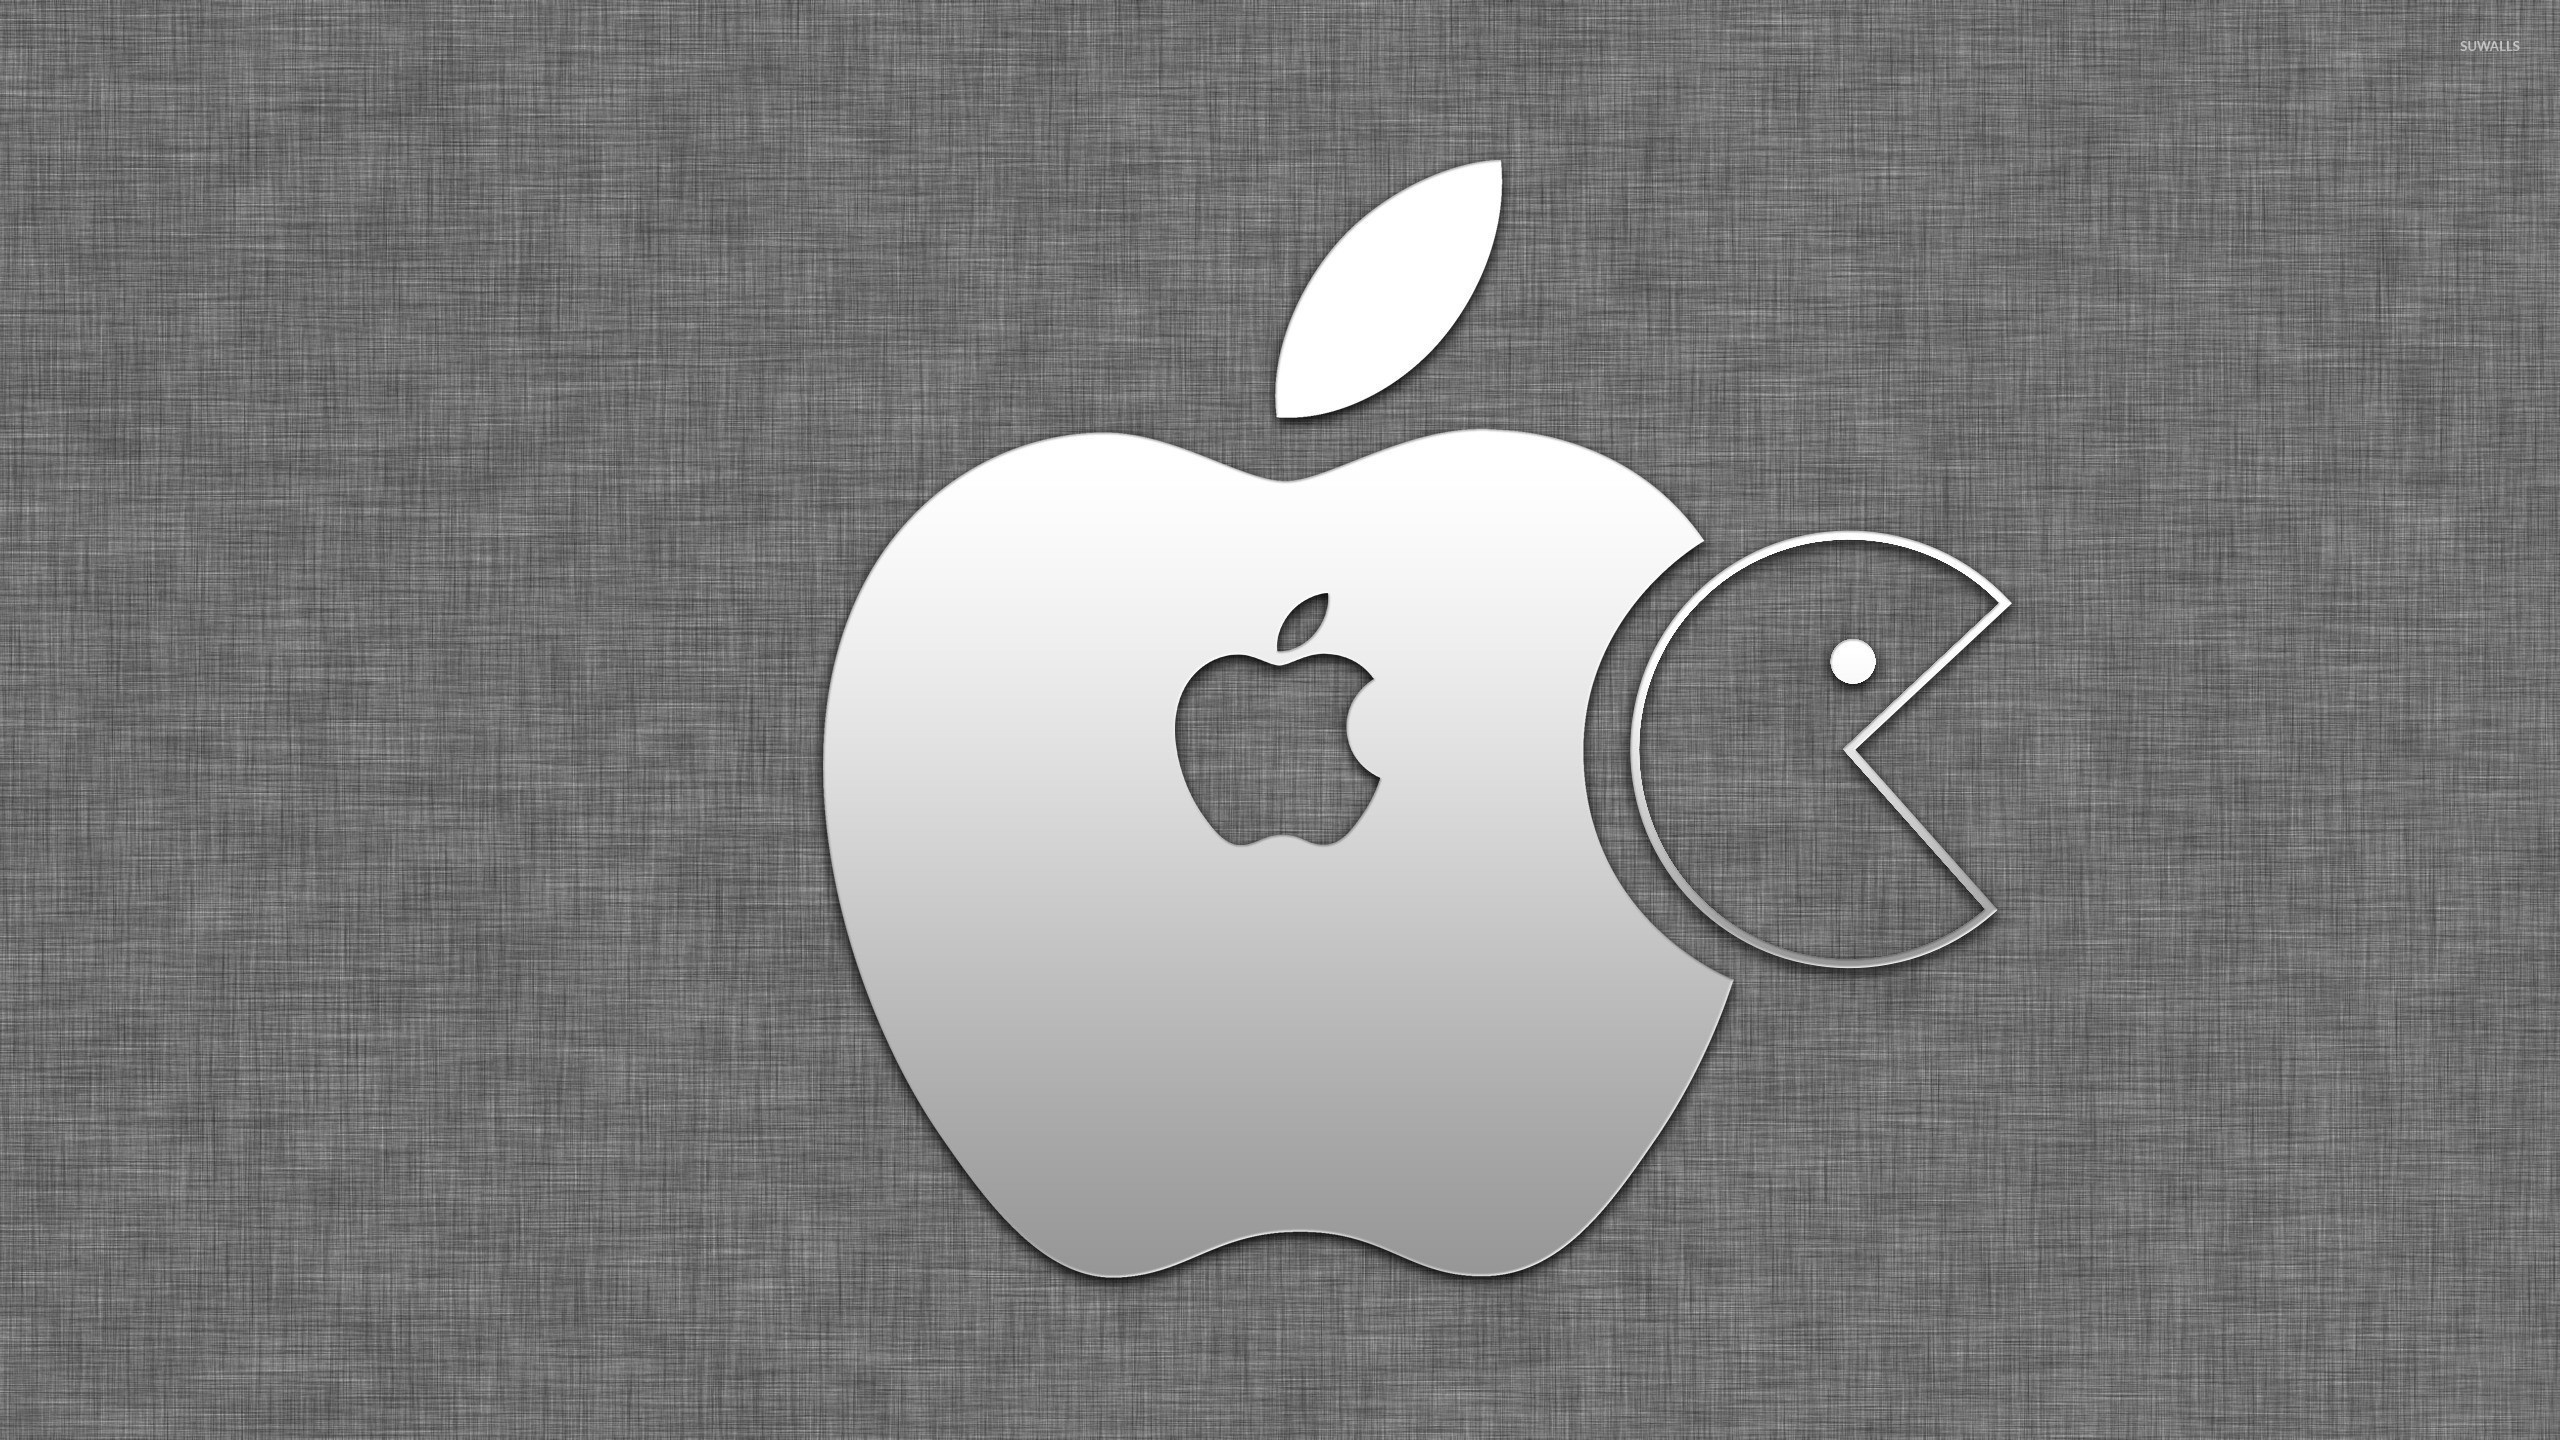 Black-Apple-Logo-HD-Pinterest-Logos-wallpaper-wpc9002918